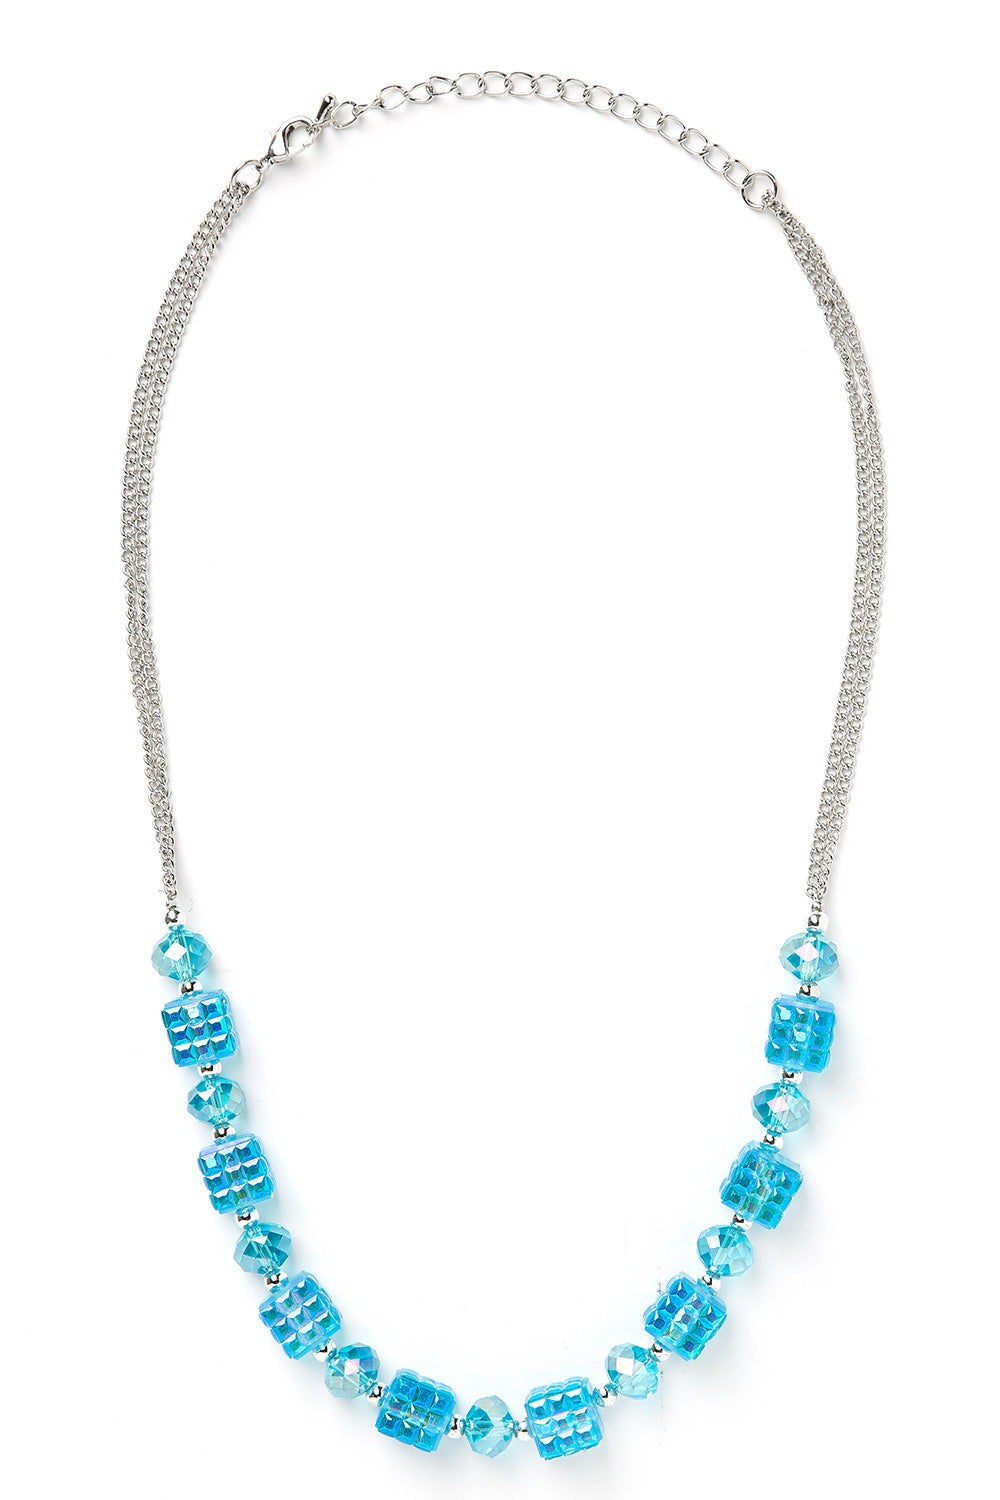 Type 4 Ice Cubed Necklace